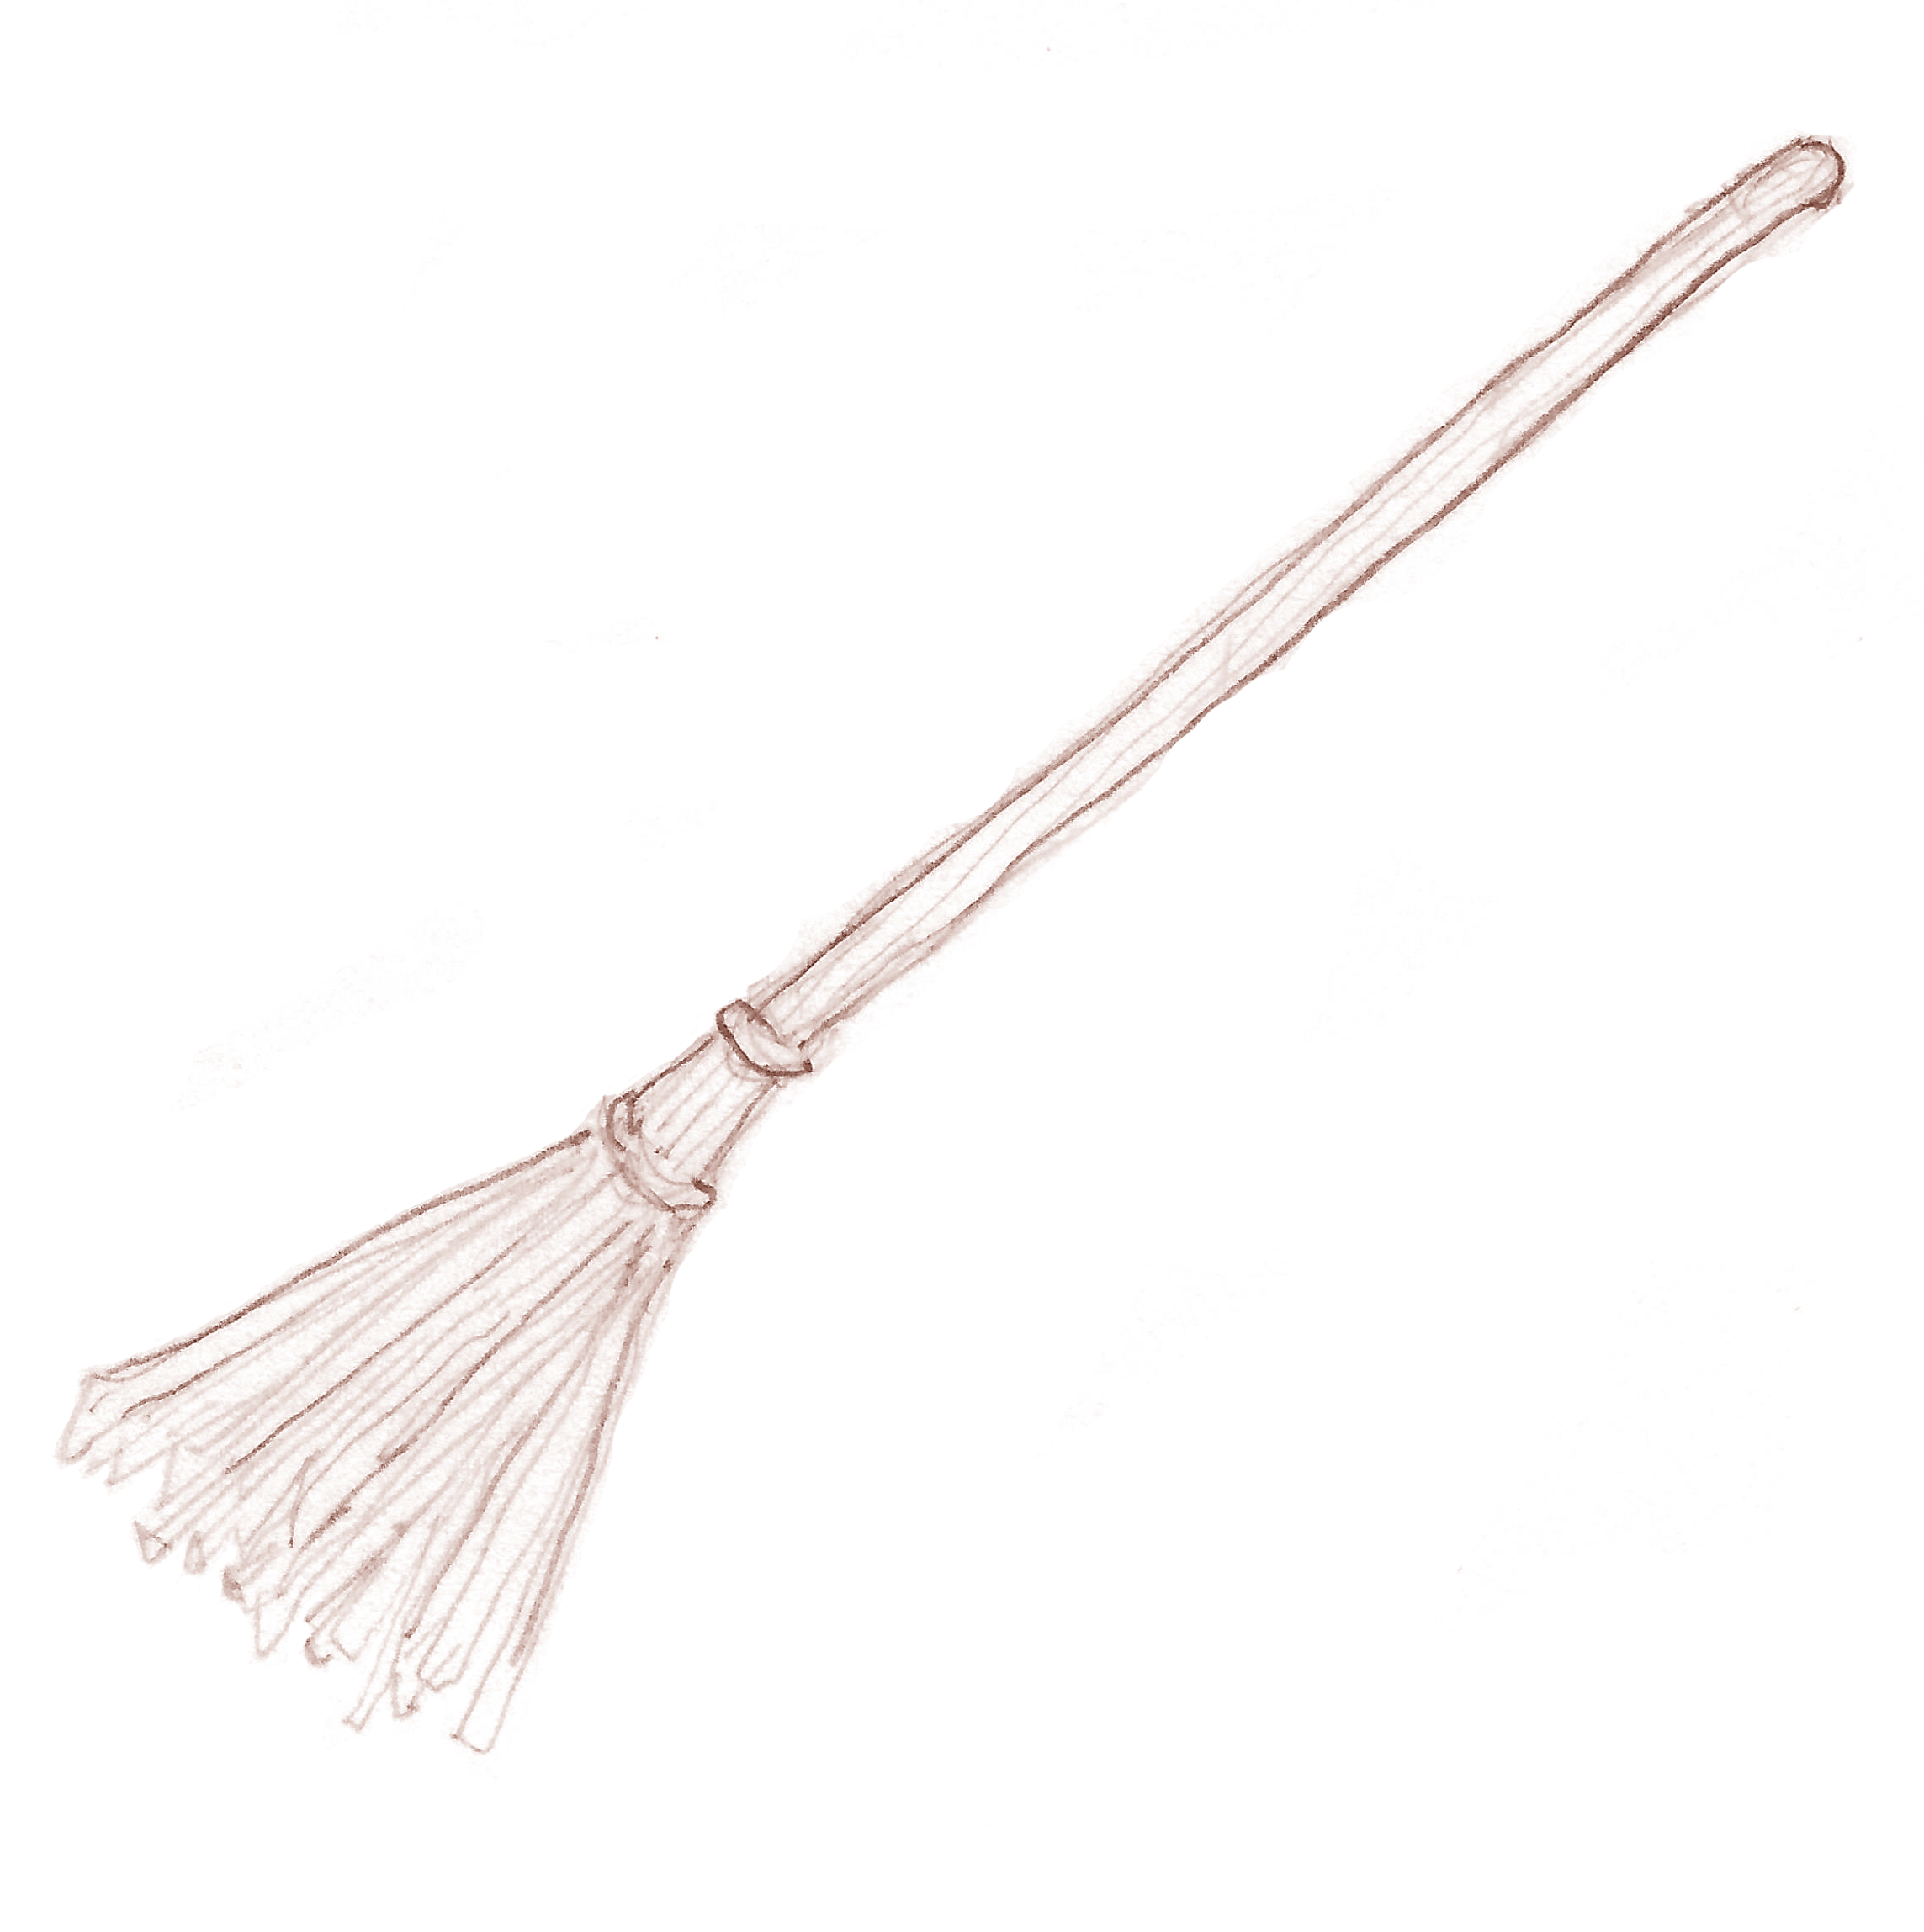 Broom (sketch)